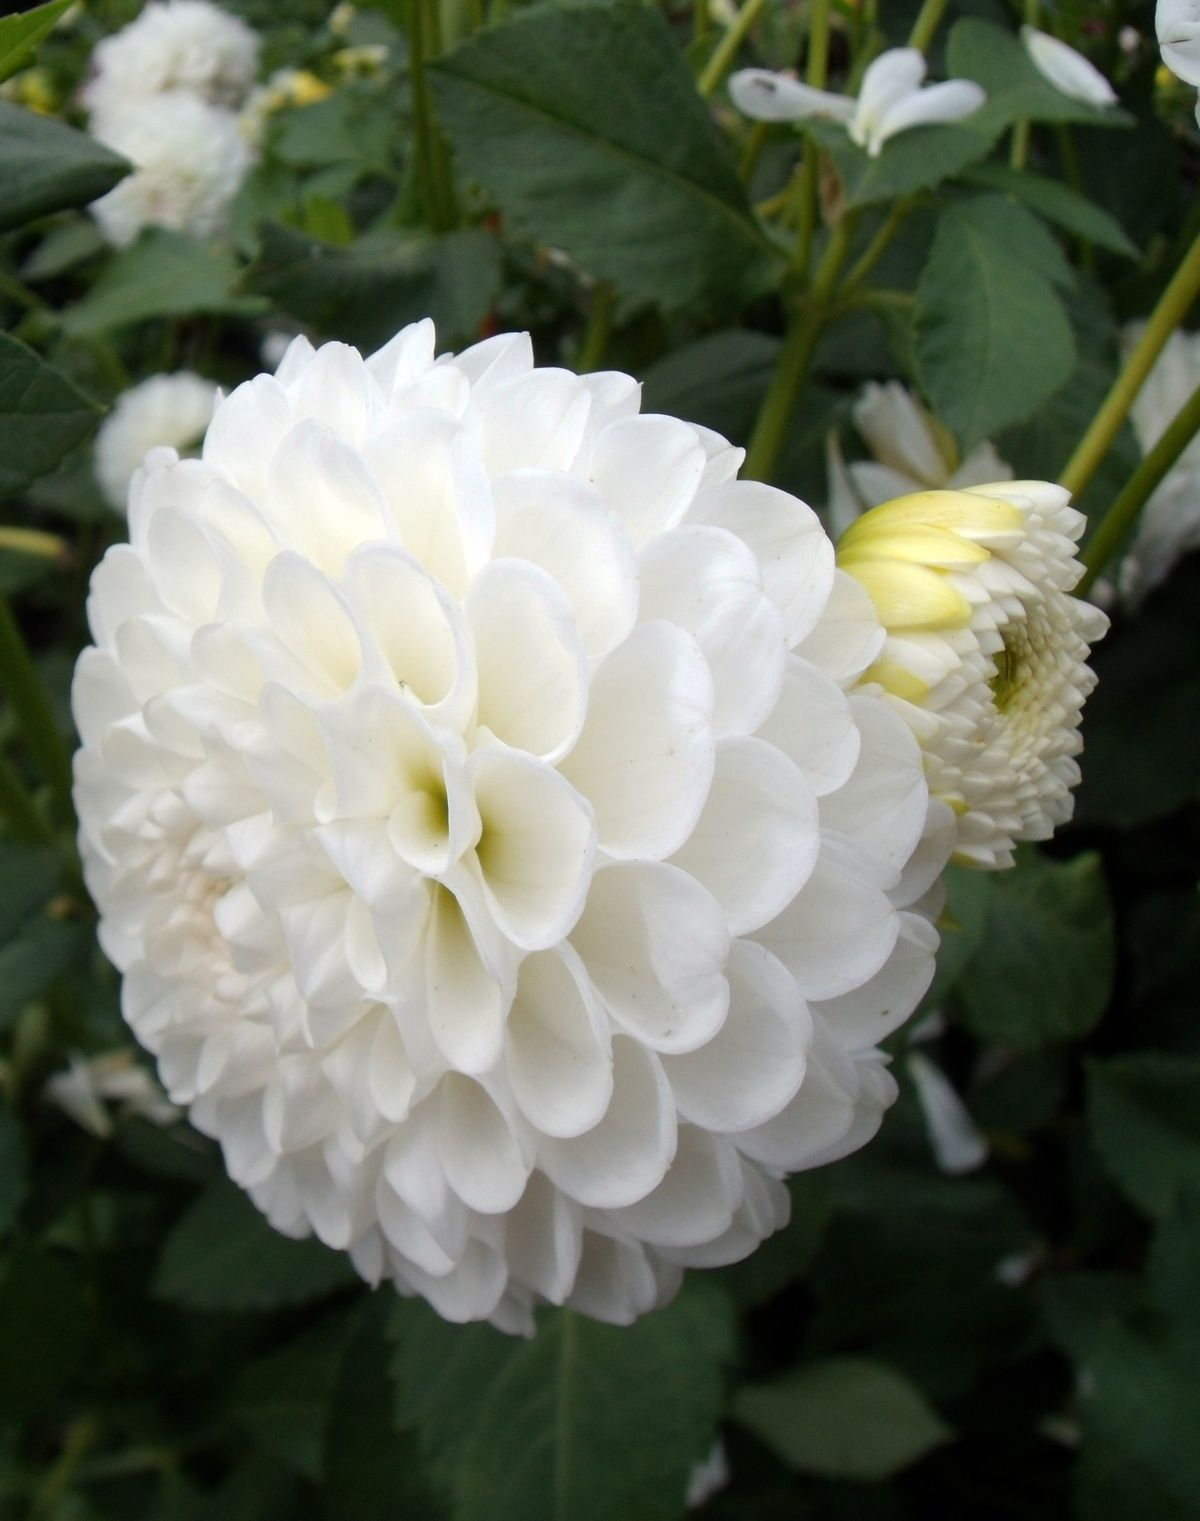 Fall flowers for flower beds plants flowers white flower dahlia fall flowers for flower beds plants flowers white flower dahlia mightylinksfo